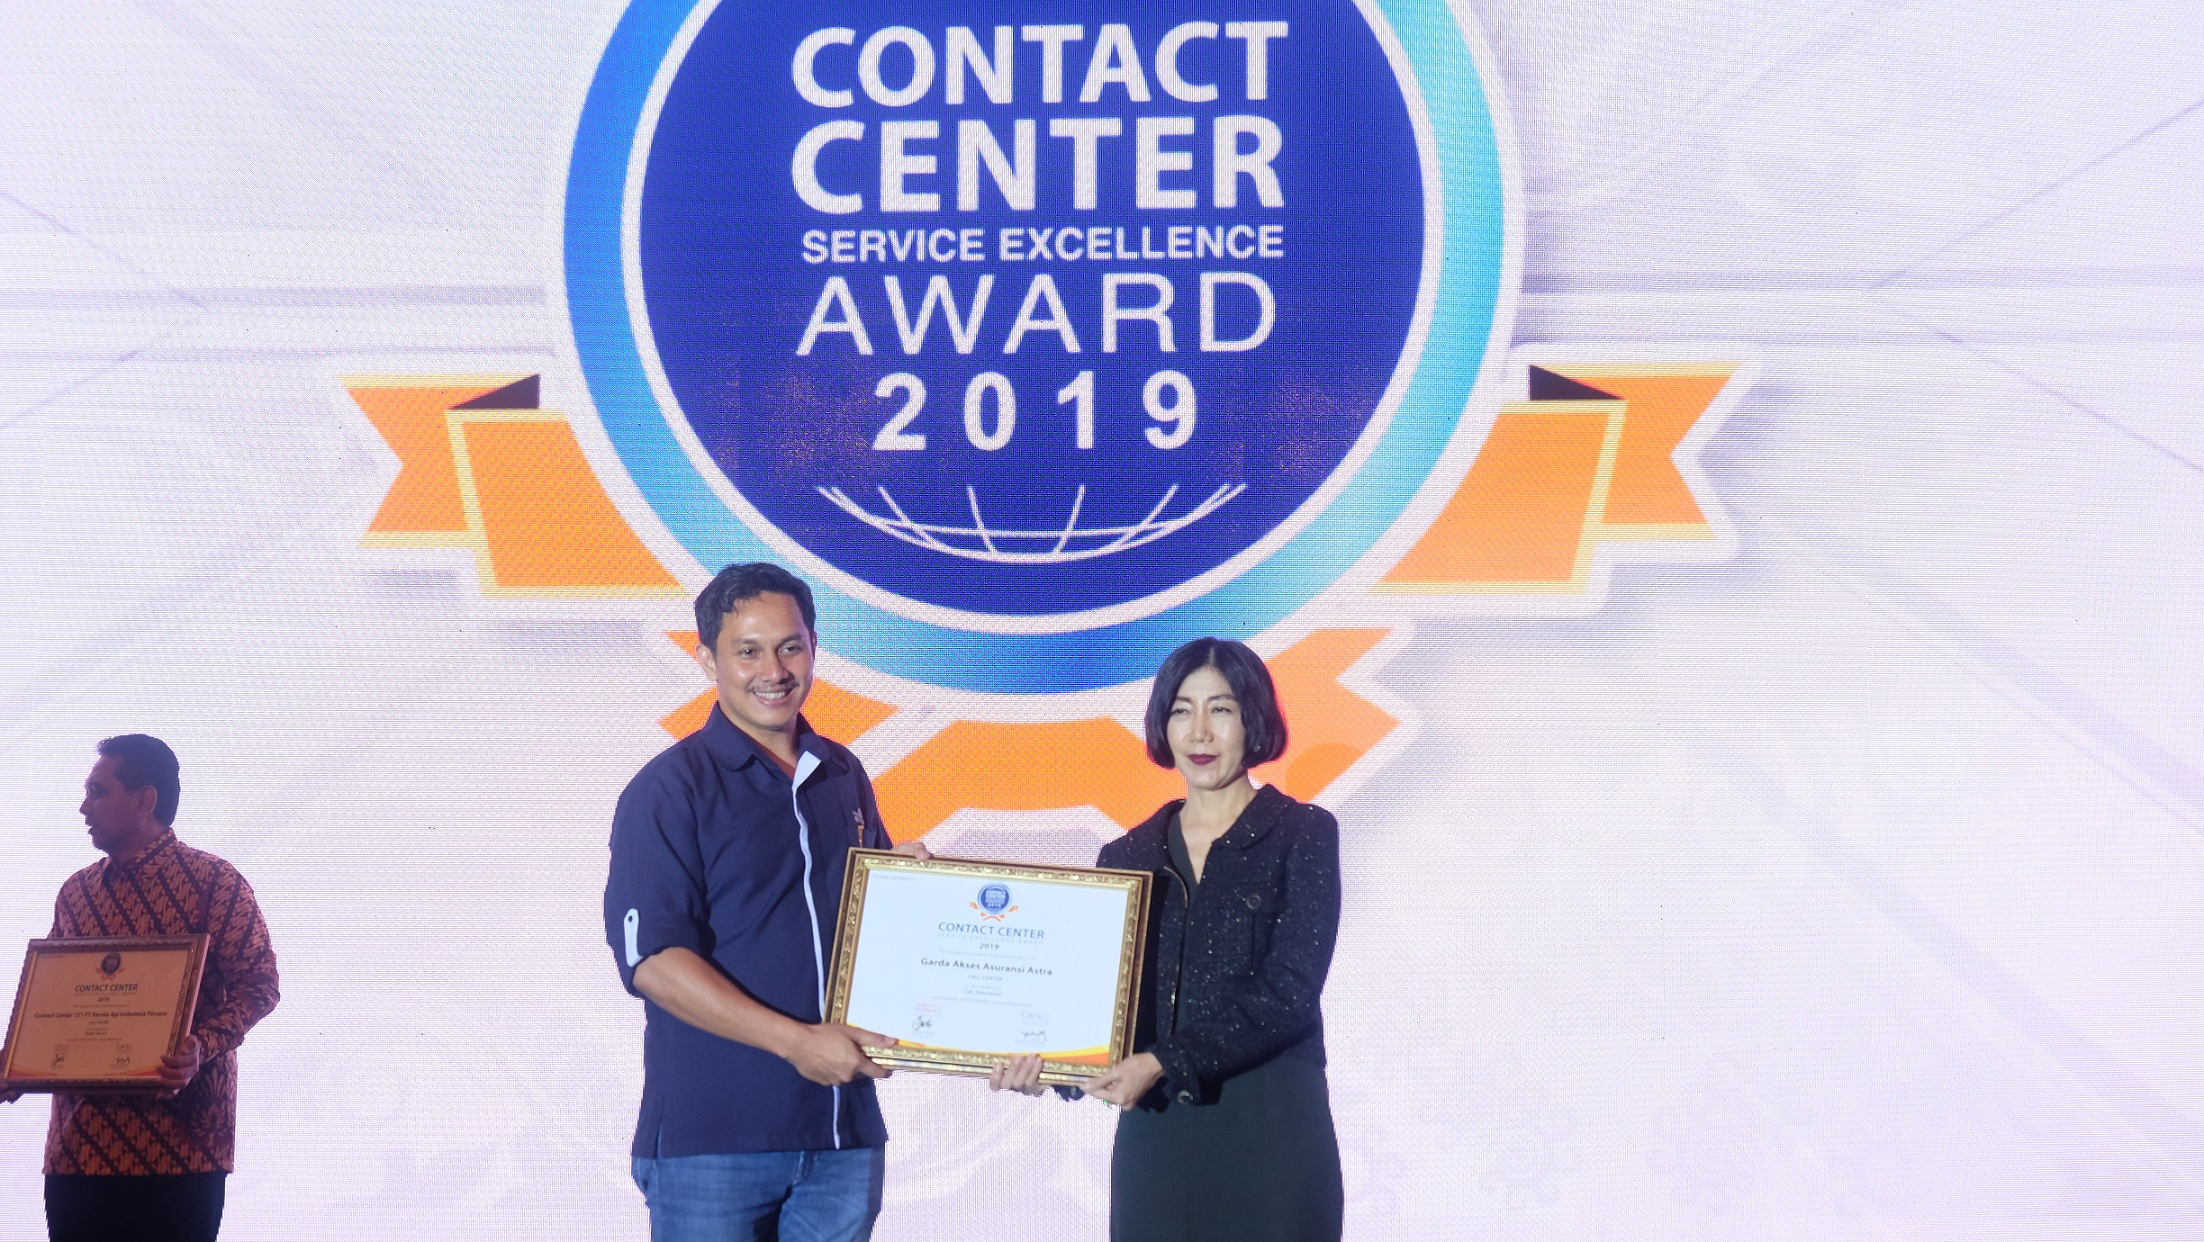 VP Health Operation Asuransi Astra, Bobby Ardi (kiri) saat menerima penghargaan Contact Center Service Excellence Award 2019